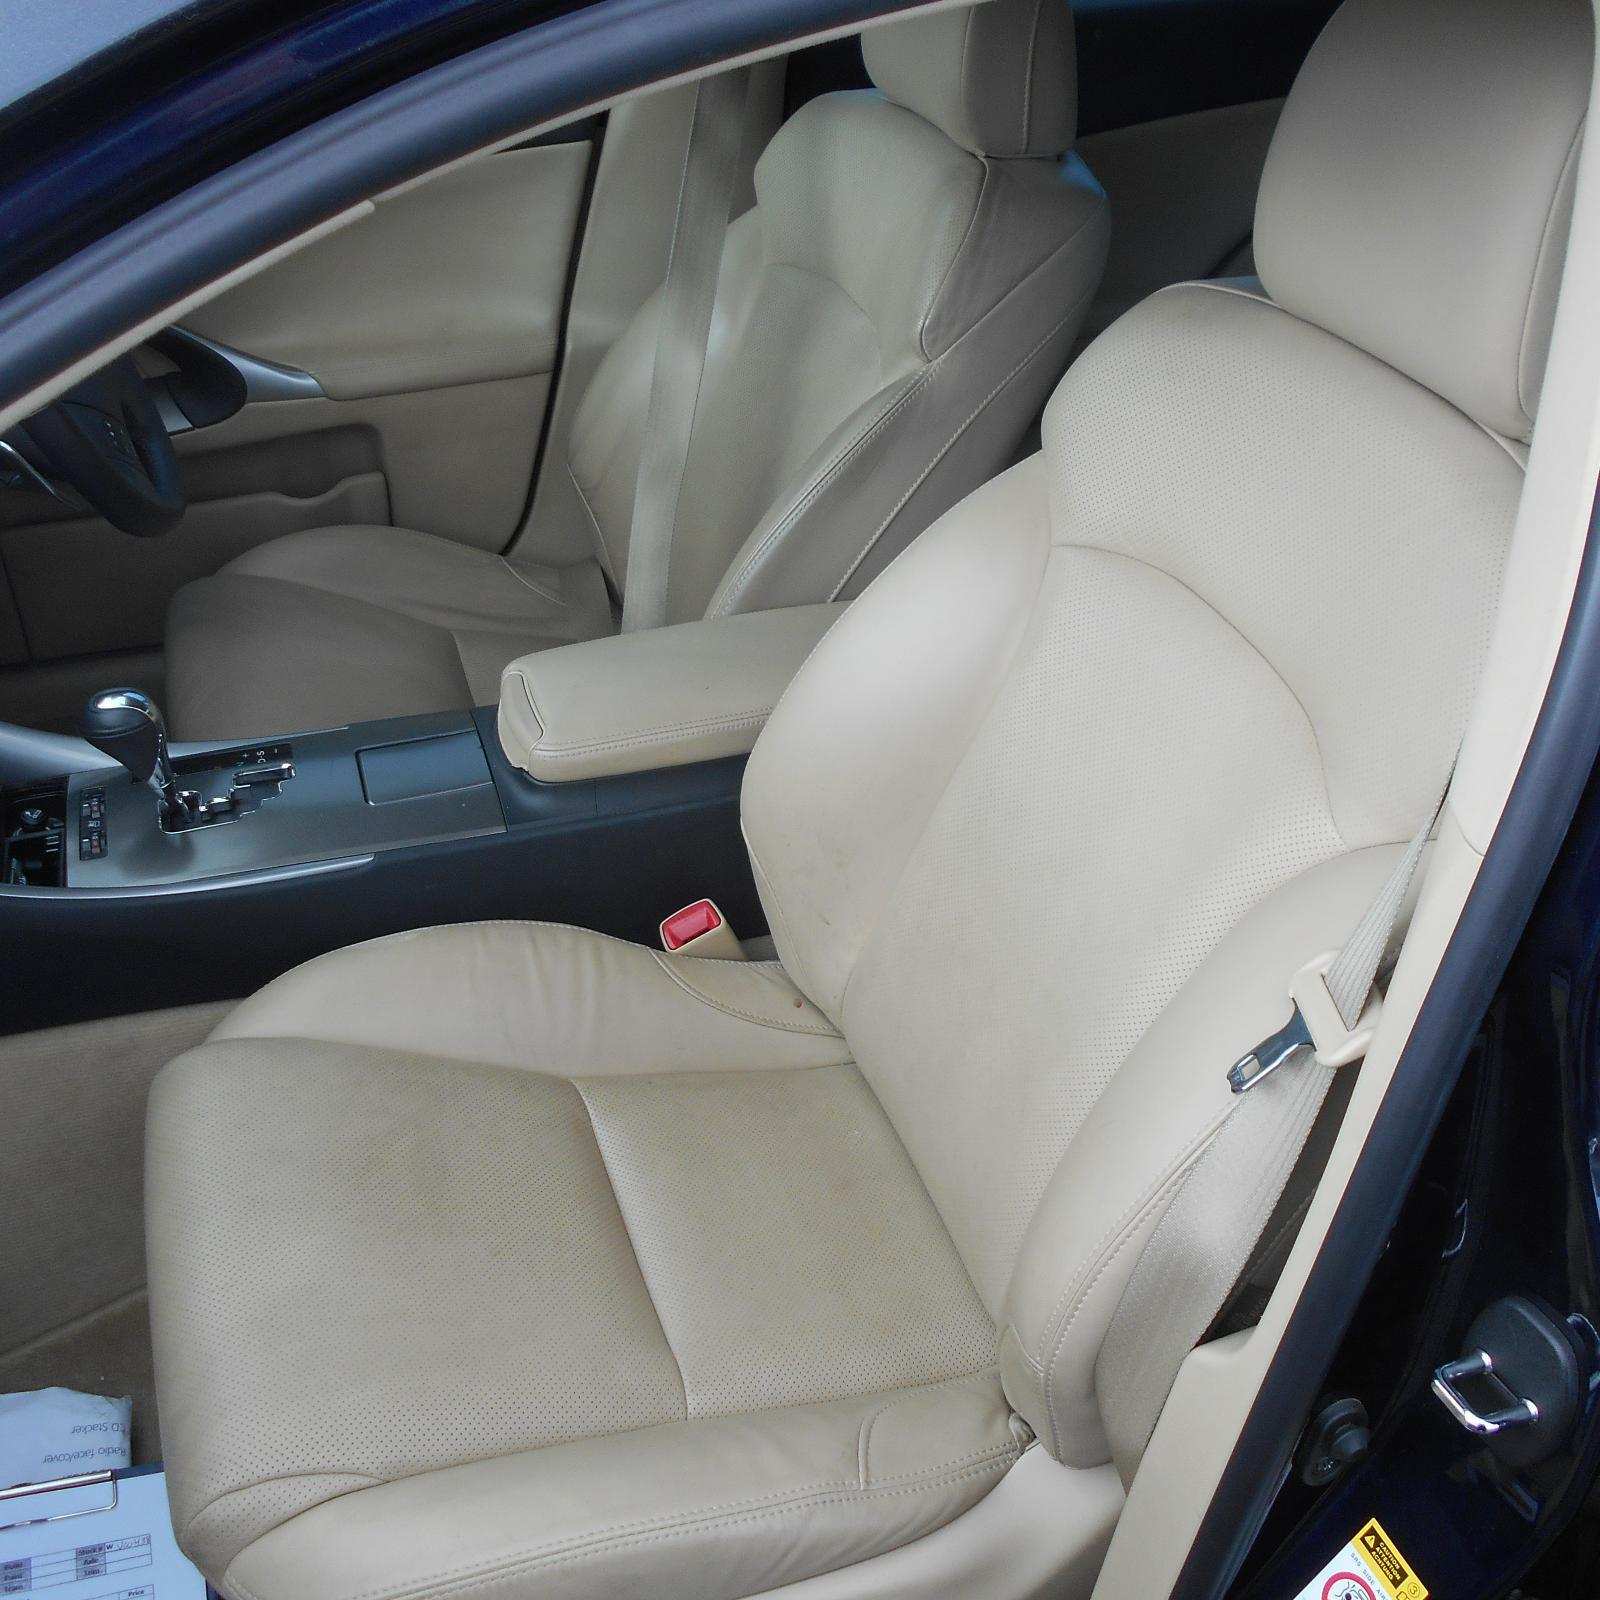 LEXUS IS250/IS250C, Front Seat, LH FRONT, GSE20R, IS250/IS350, LEATHER, BEIGE, PRESTIGE/X, 11/05-06/13